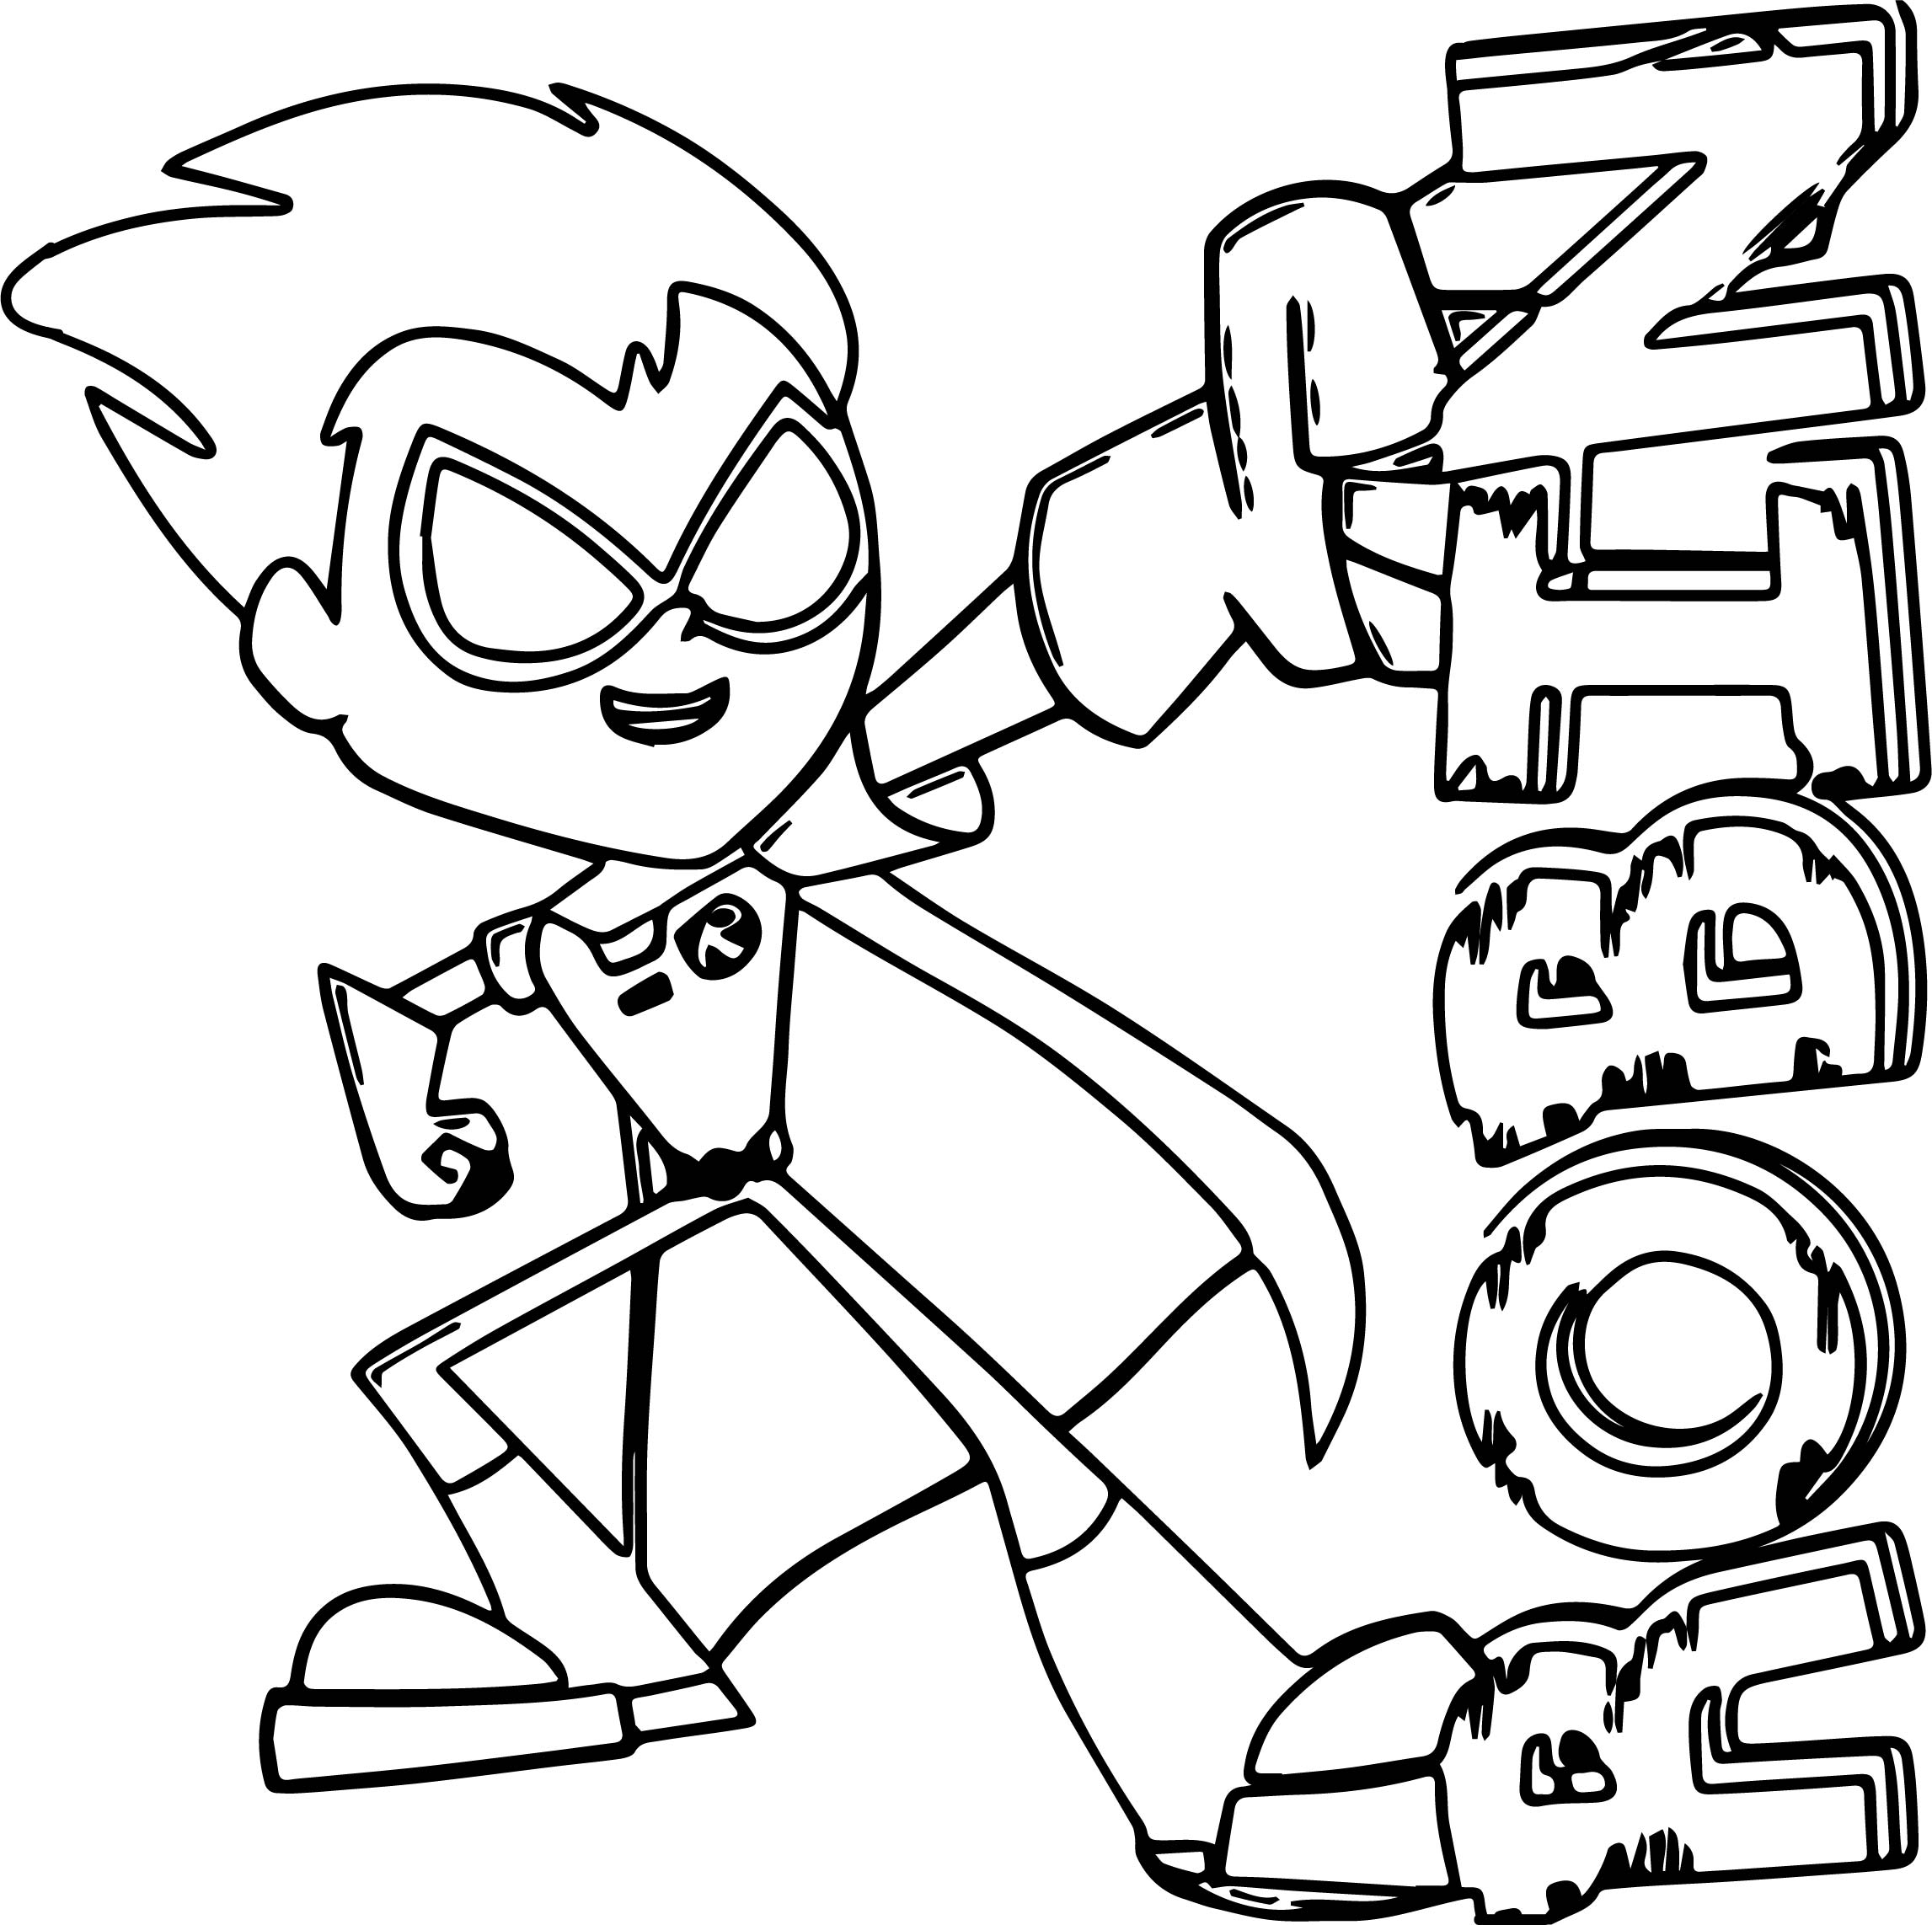 Robin teen titans go coloring page for Teen titans go color pages